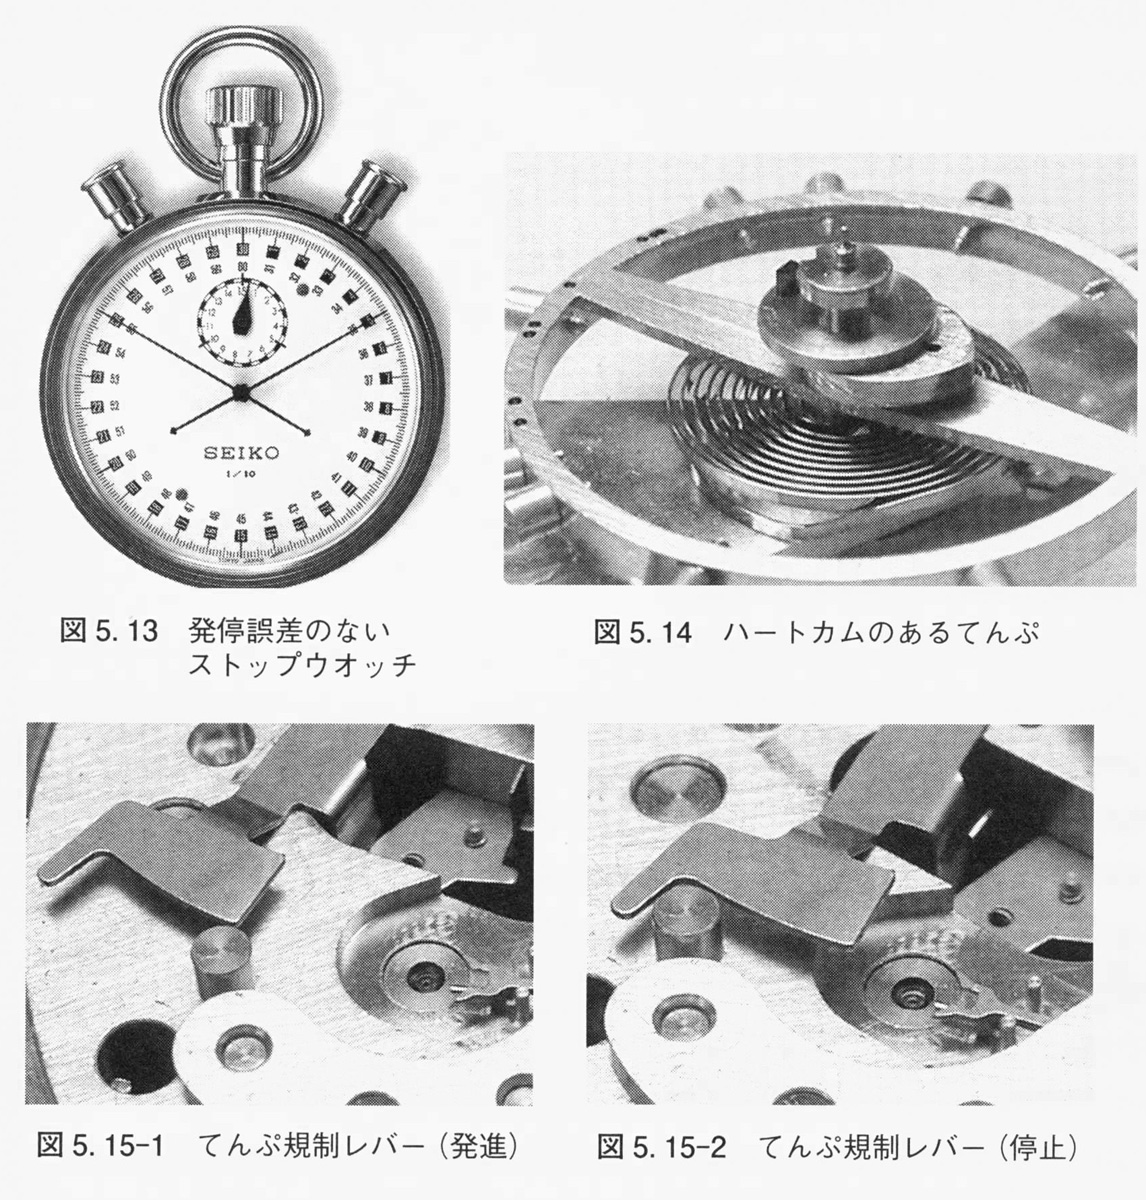 Lectures on Mechanical Watch [6]